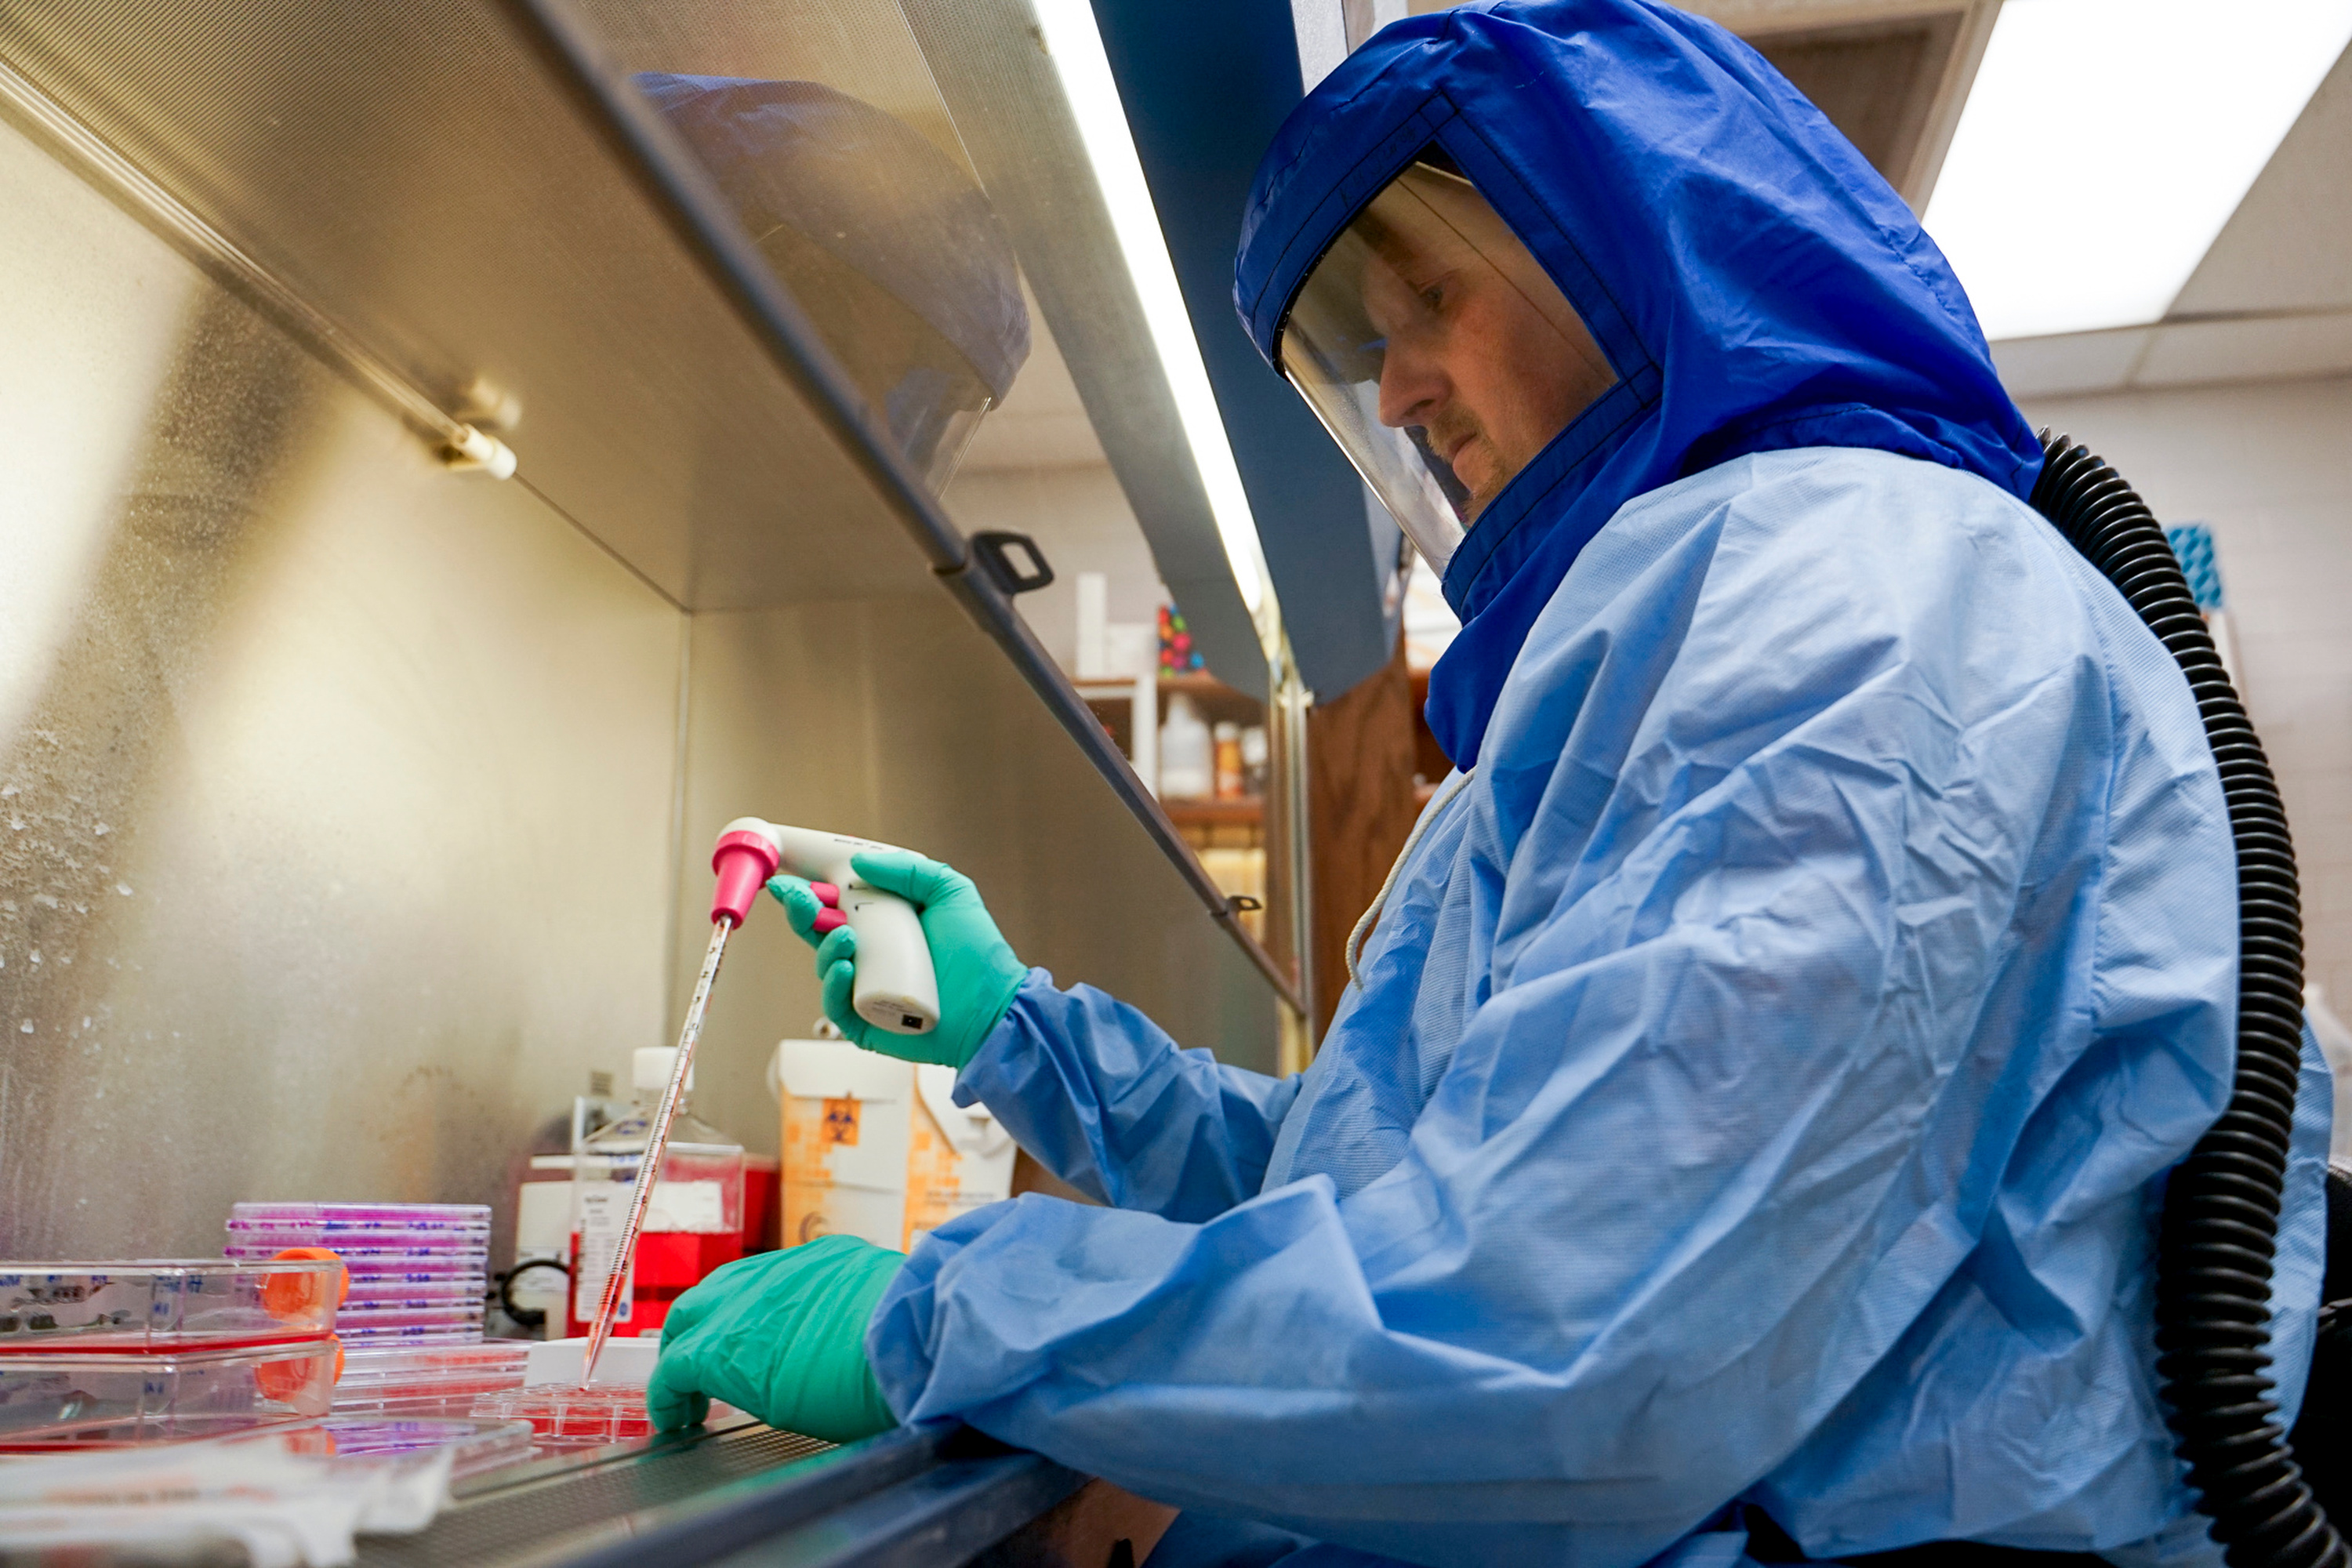 Brett Hurst, a virologist, works at Utah State University's Institute for Antiviral Research on March 18, 2020. Genetically engineered golden Syrian hamsters developed by Utah State University researchers have played a key role in animal trials of a possible vaccine to protect against the virus that causes COVID-19.